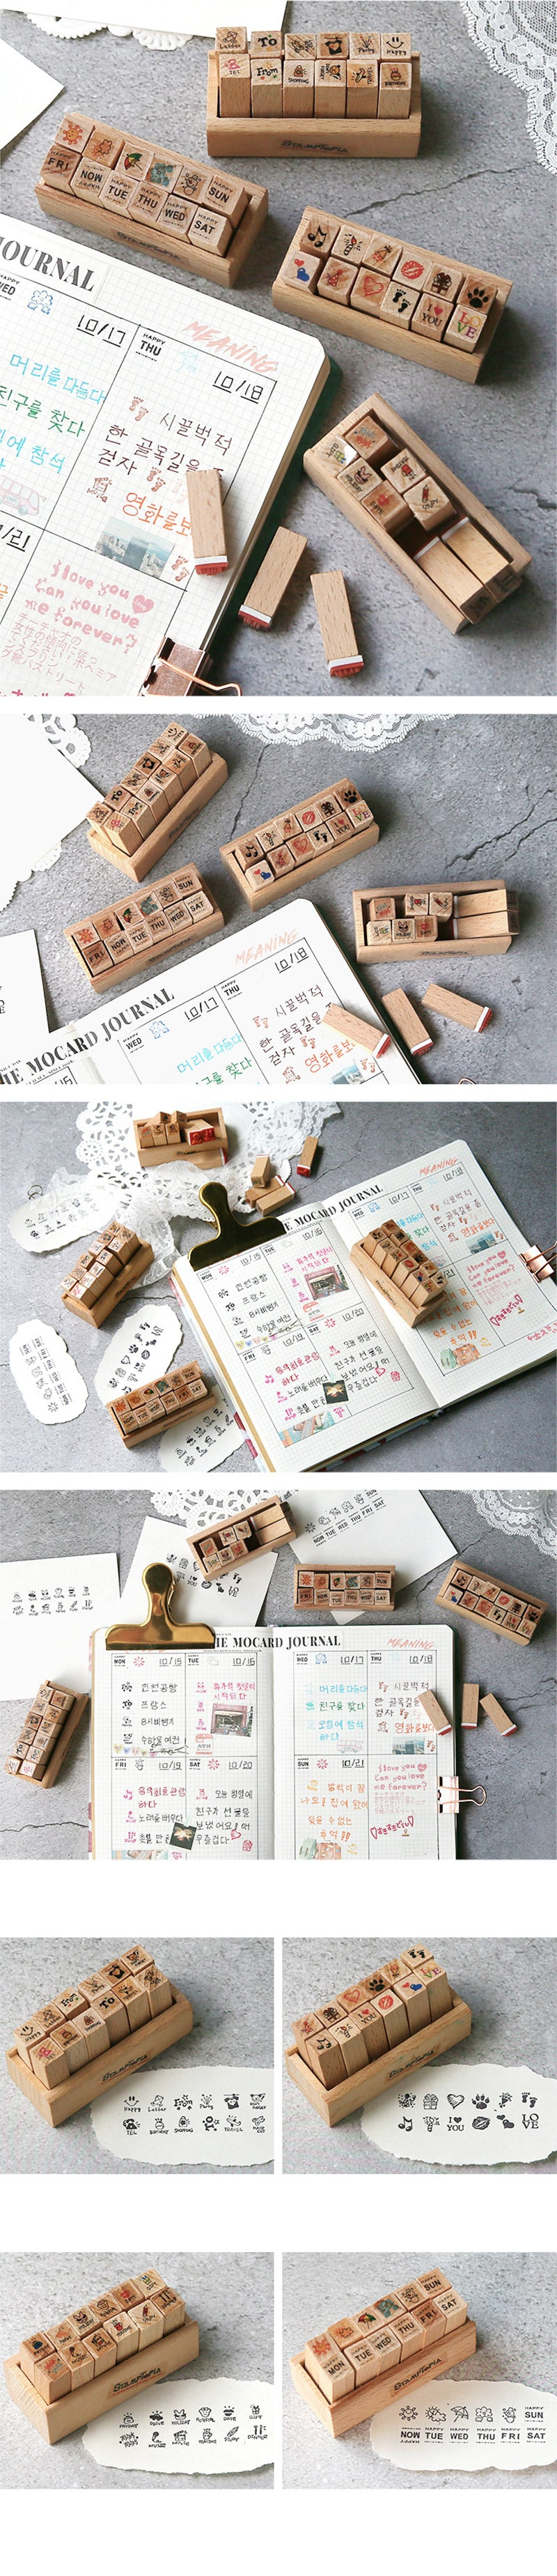 Kawaii Daily Planner Wooden Stamp Set - Detail